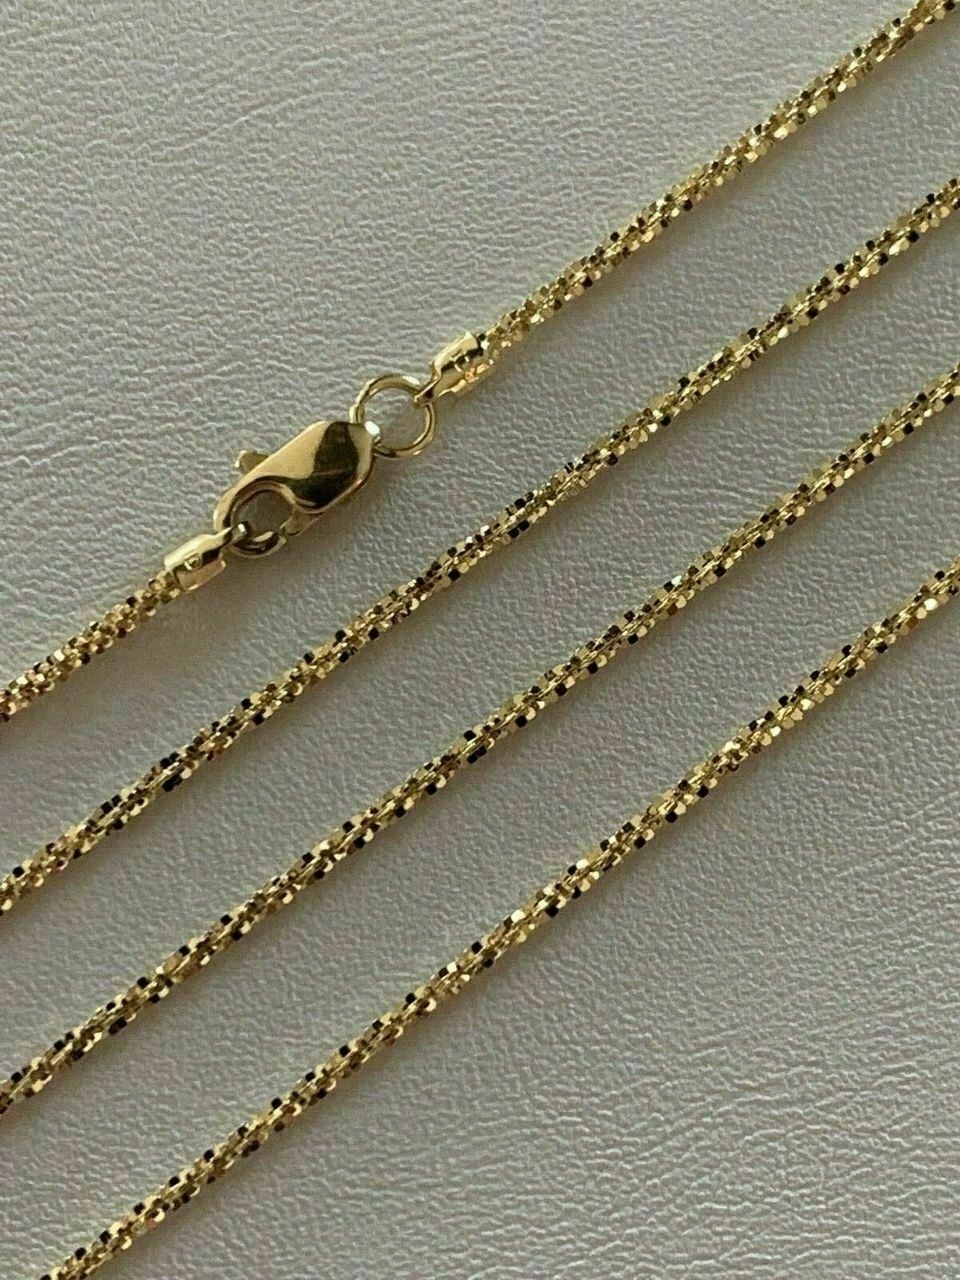 Solid_14k_Yellow_Gold_Ladies_1.5mm_Sparkle_Rope_Chain_Twist_Necklace_Diamond